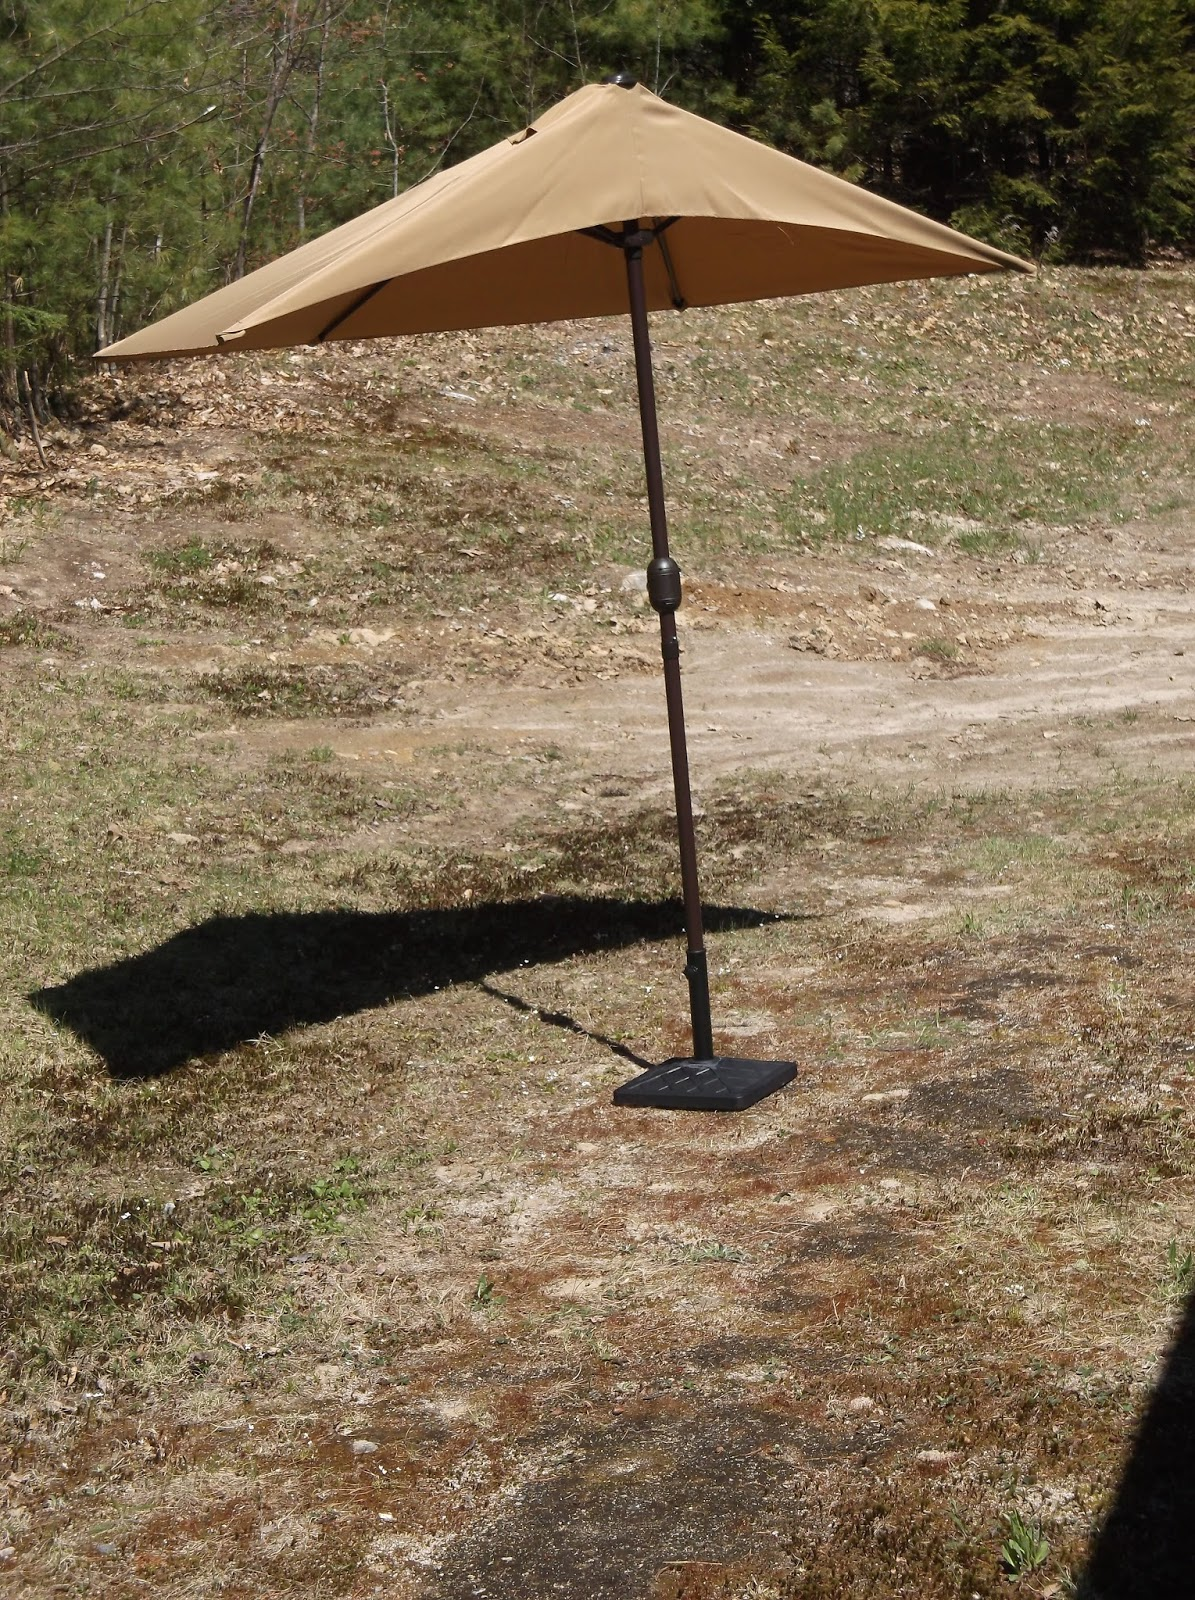 Patio Umbrella Crank Diagram: Missys Product Reviews : Sundale Outdoor Tan 9 Feet Steel